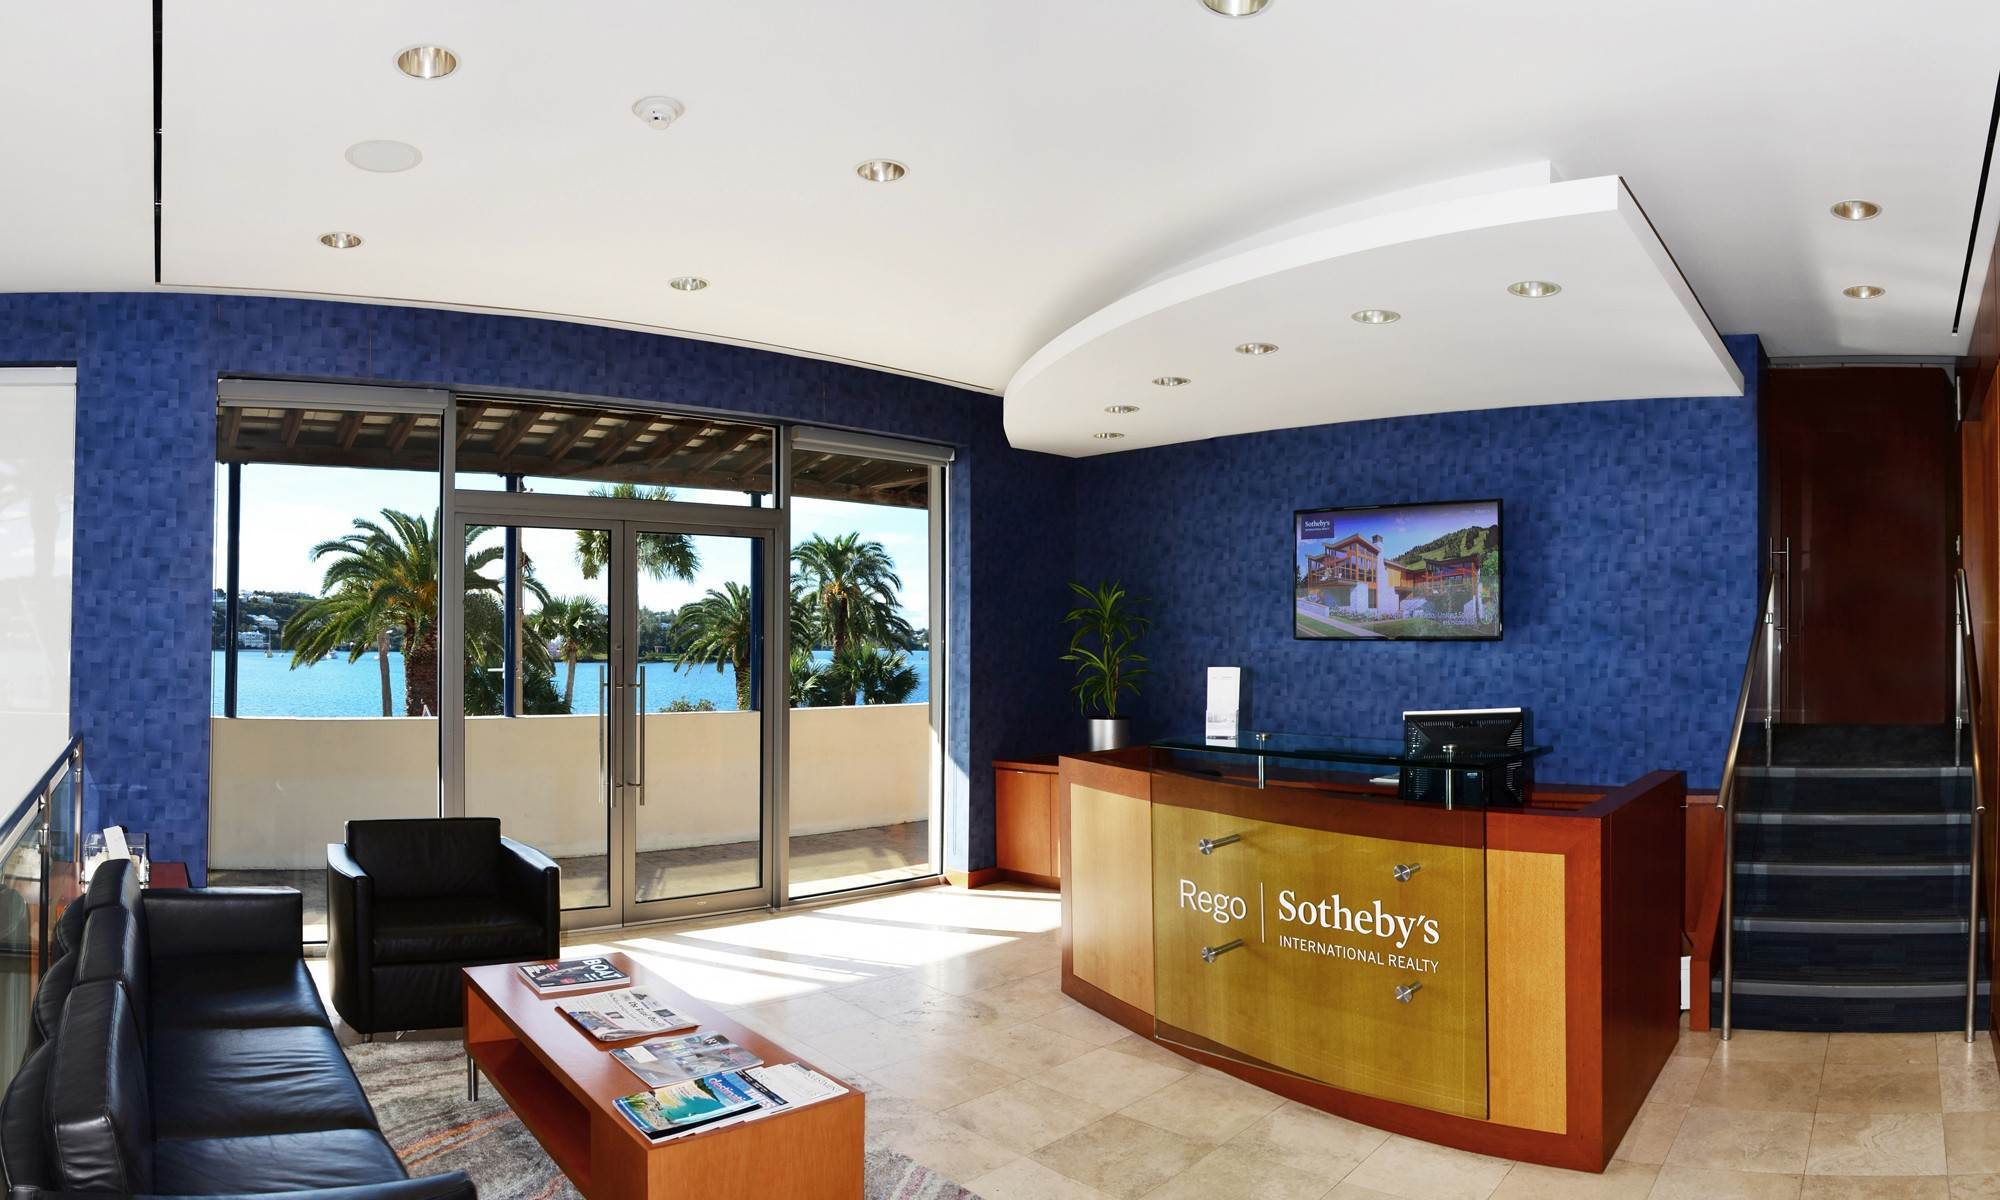 Office Rego Sotheby's International Realty Photo